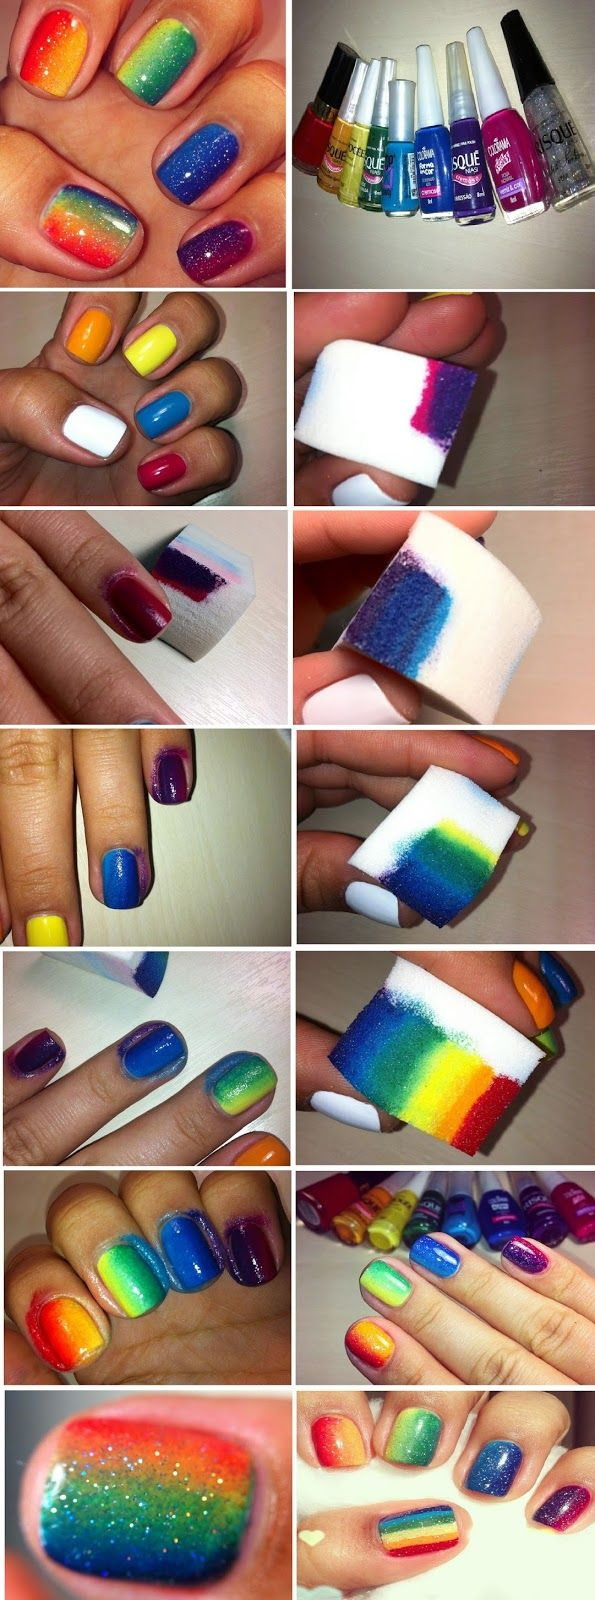 Ombre Rainbow Nails Art Design Tutorials Step by Step ...